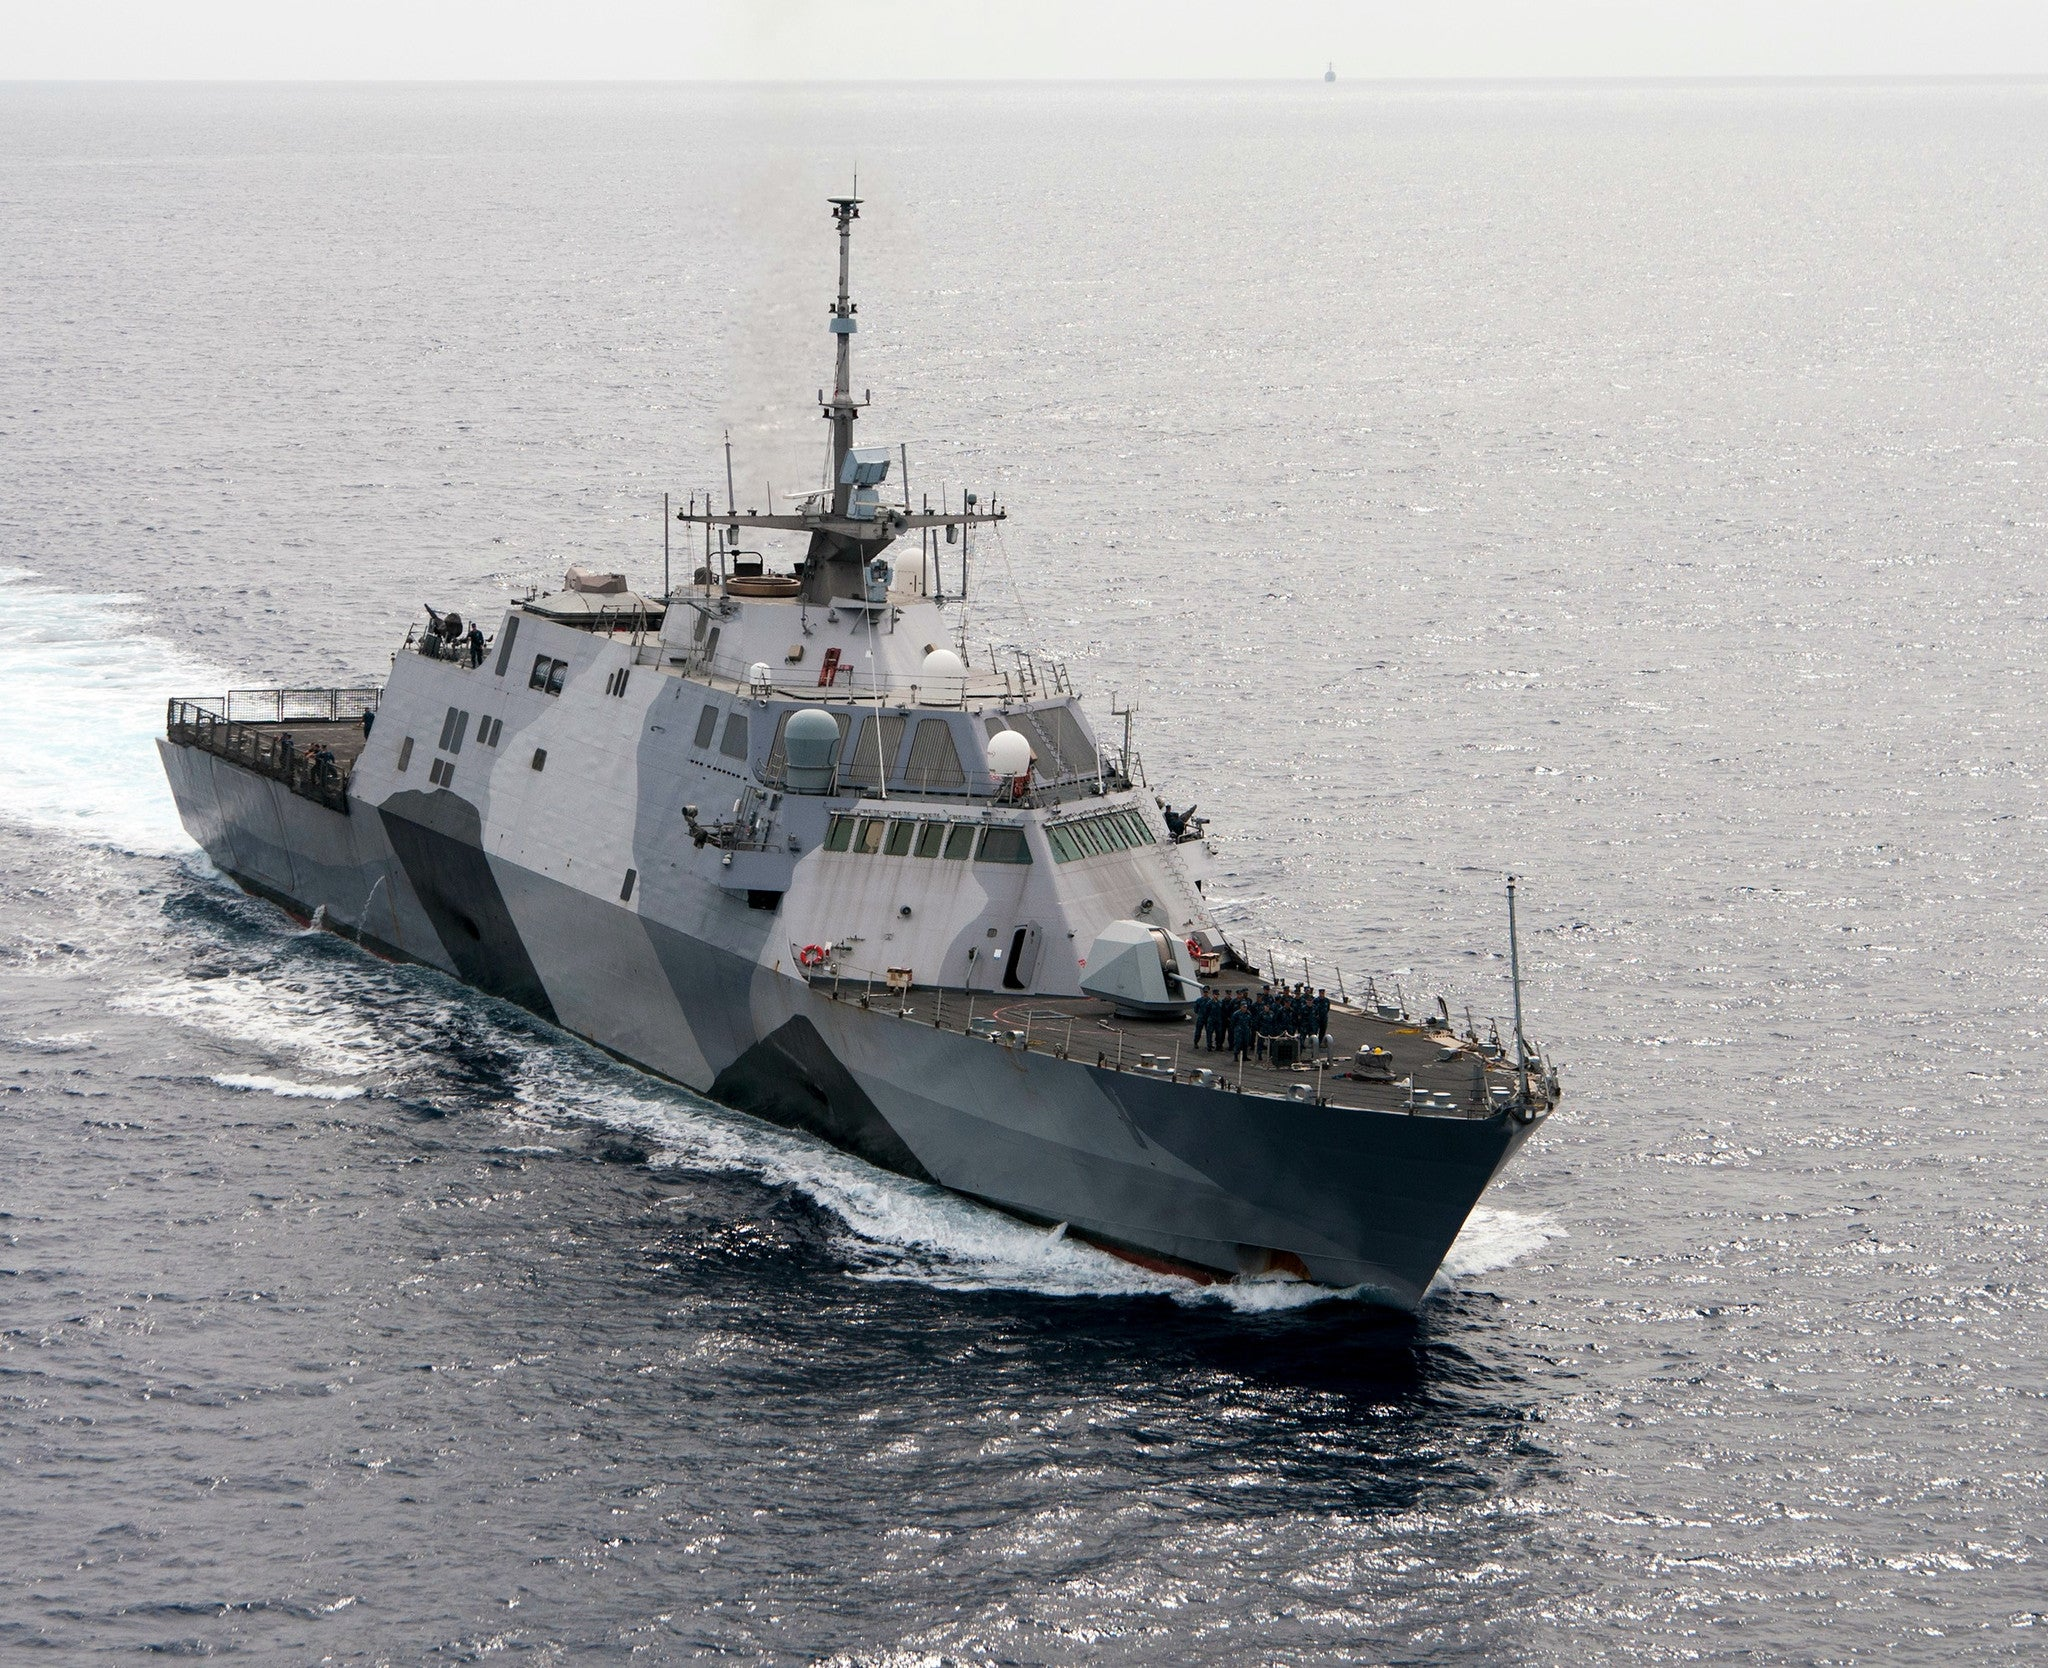 "Littoral Combat Ship USS Freedom LCS-1 Pearl Harbor December 13, 2013 - 8 x 10"" Photograph"